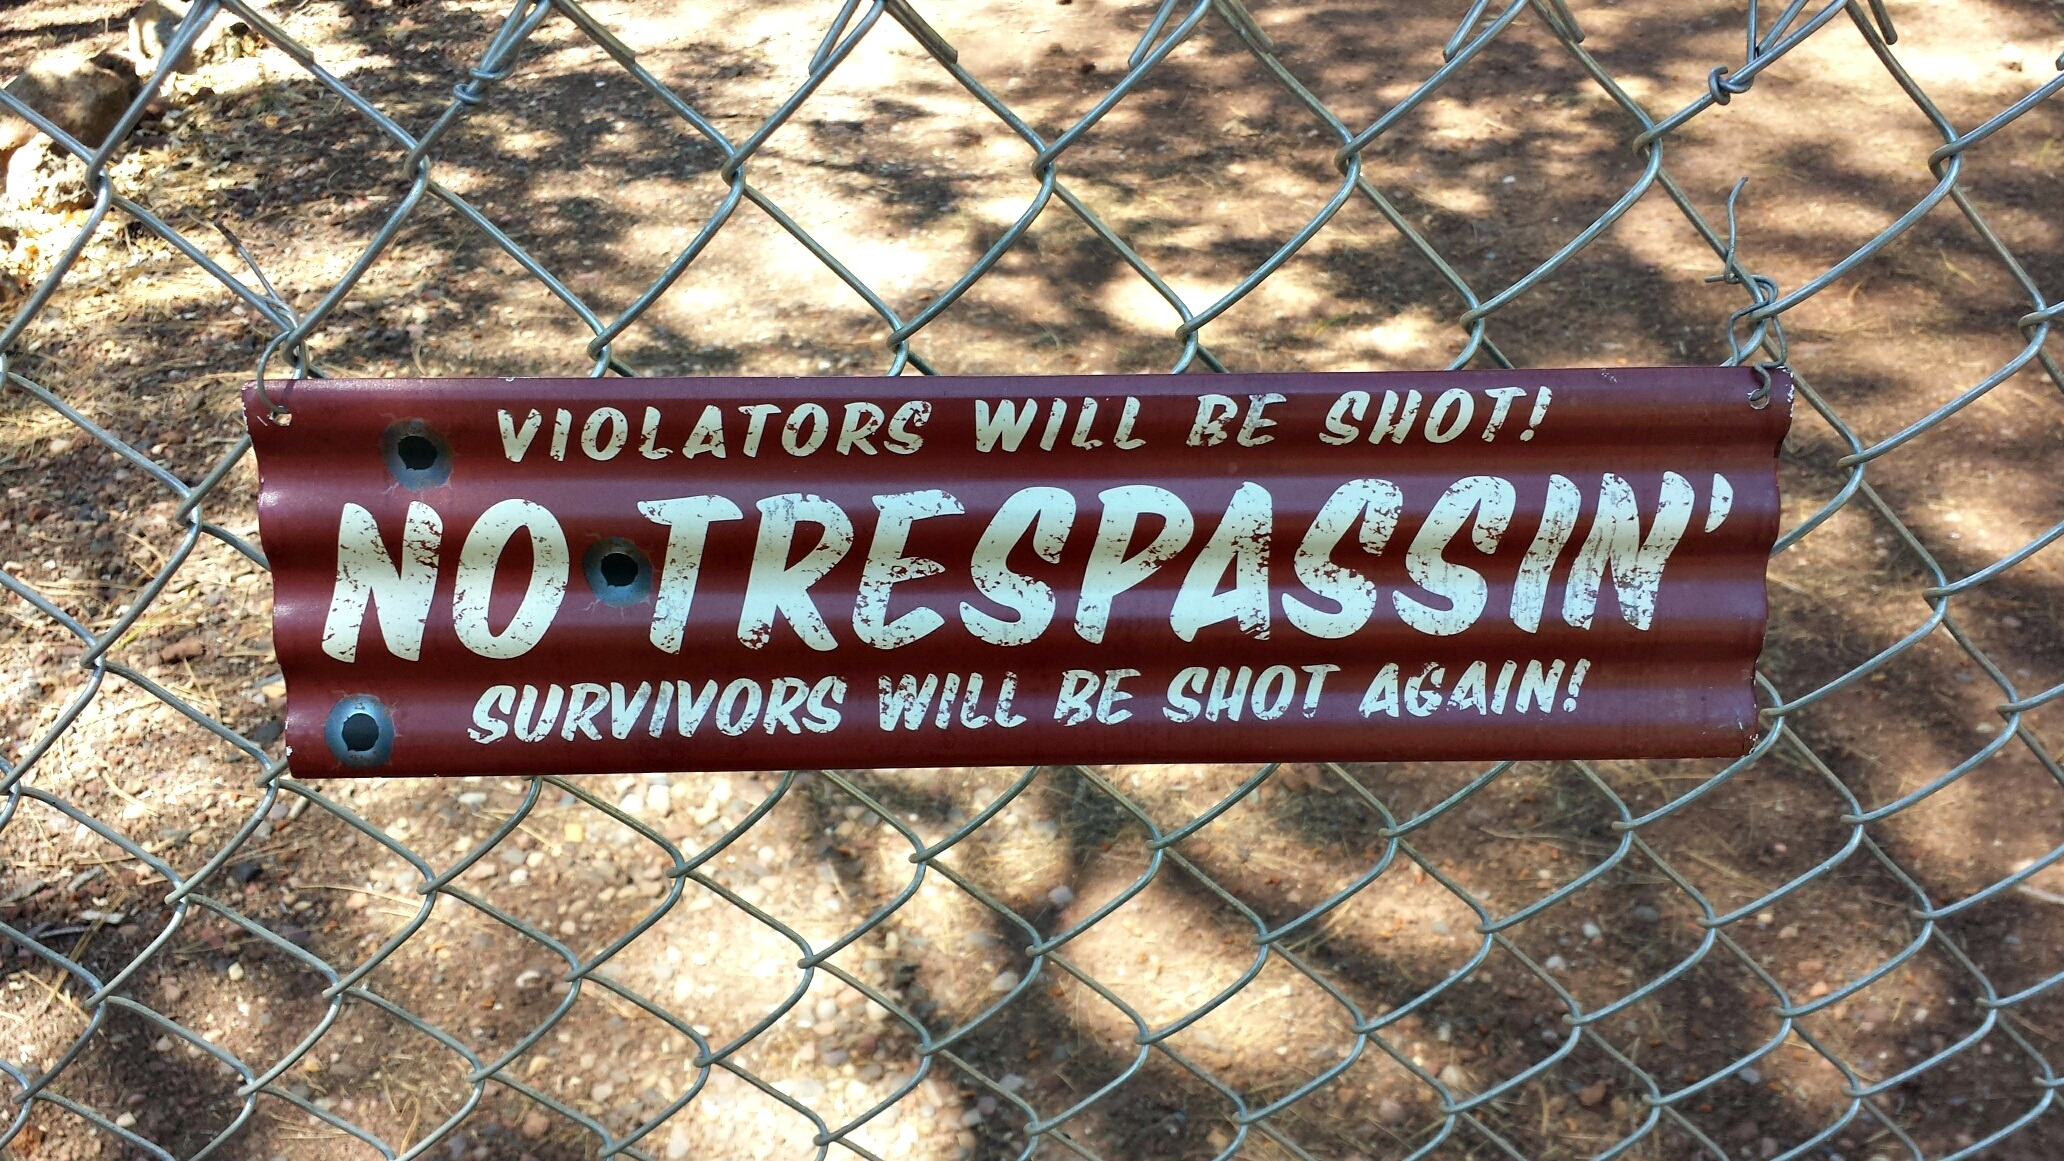 """A sign posted on a fence. It says, """"No Trespassin'. Violators will be shot! Survivors will be shot again!"""""""